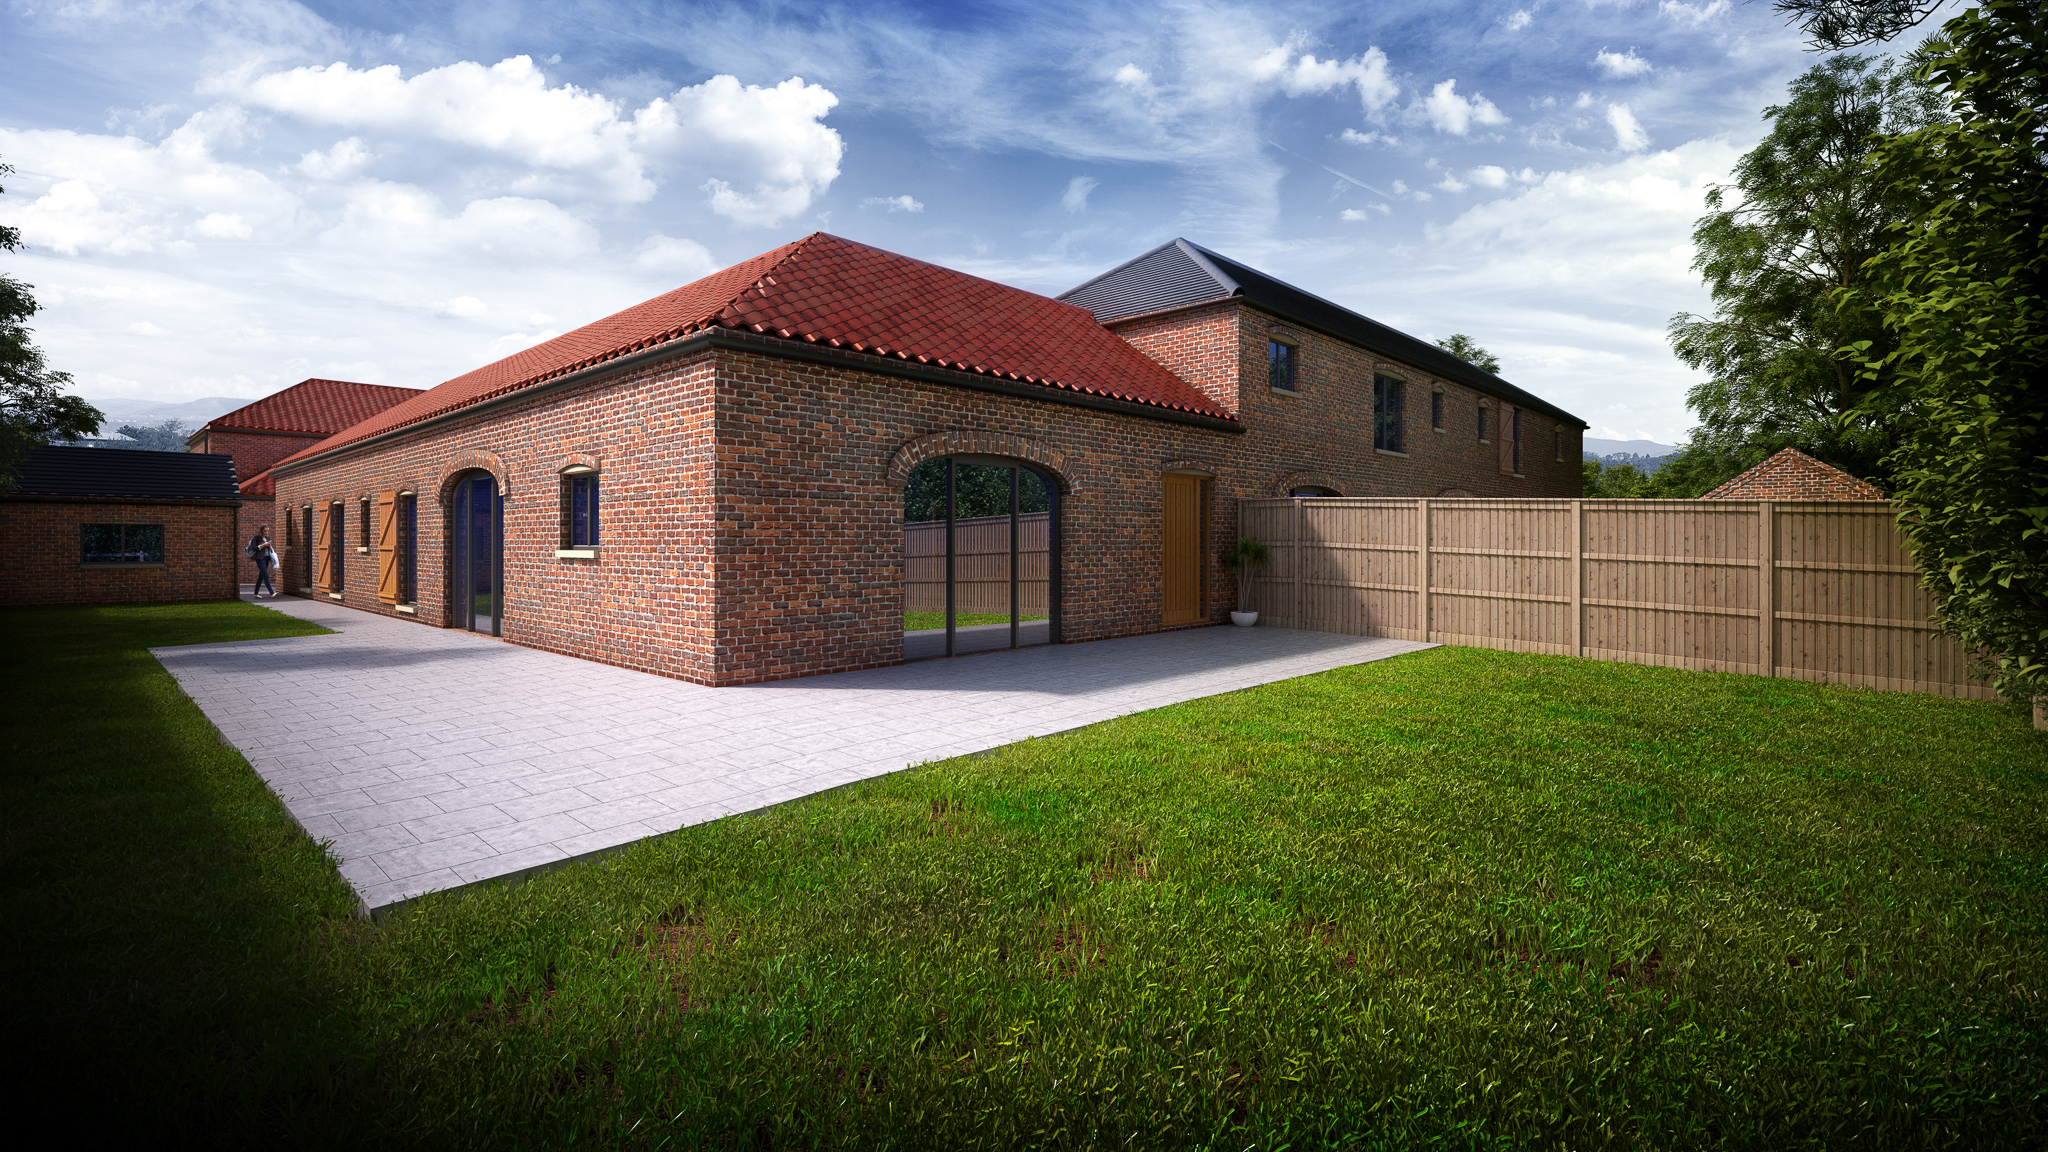 New Build Property For Sale in Middle Rasen